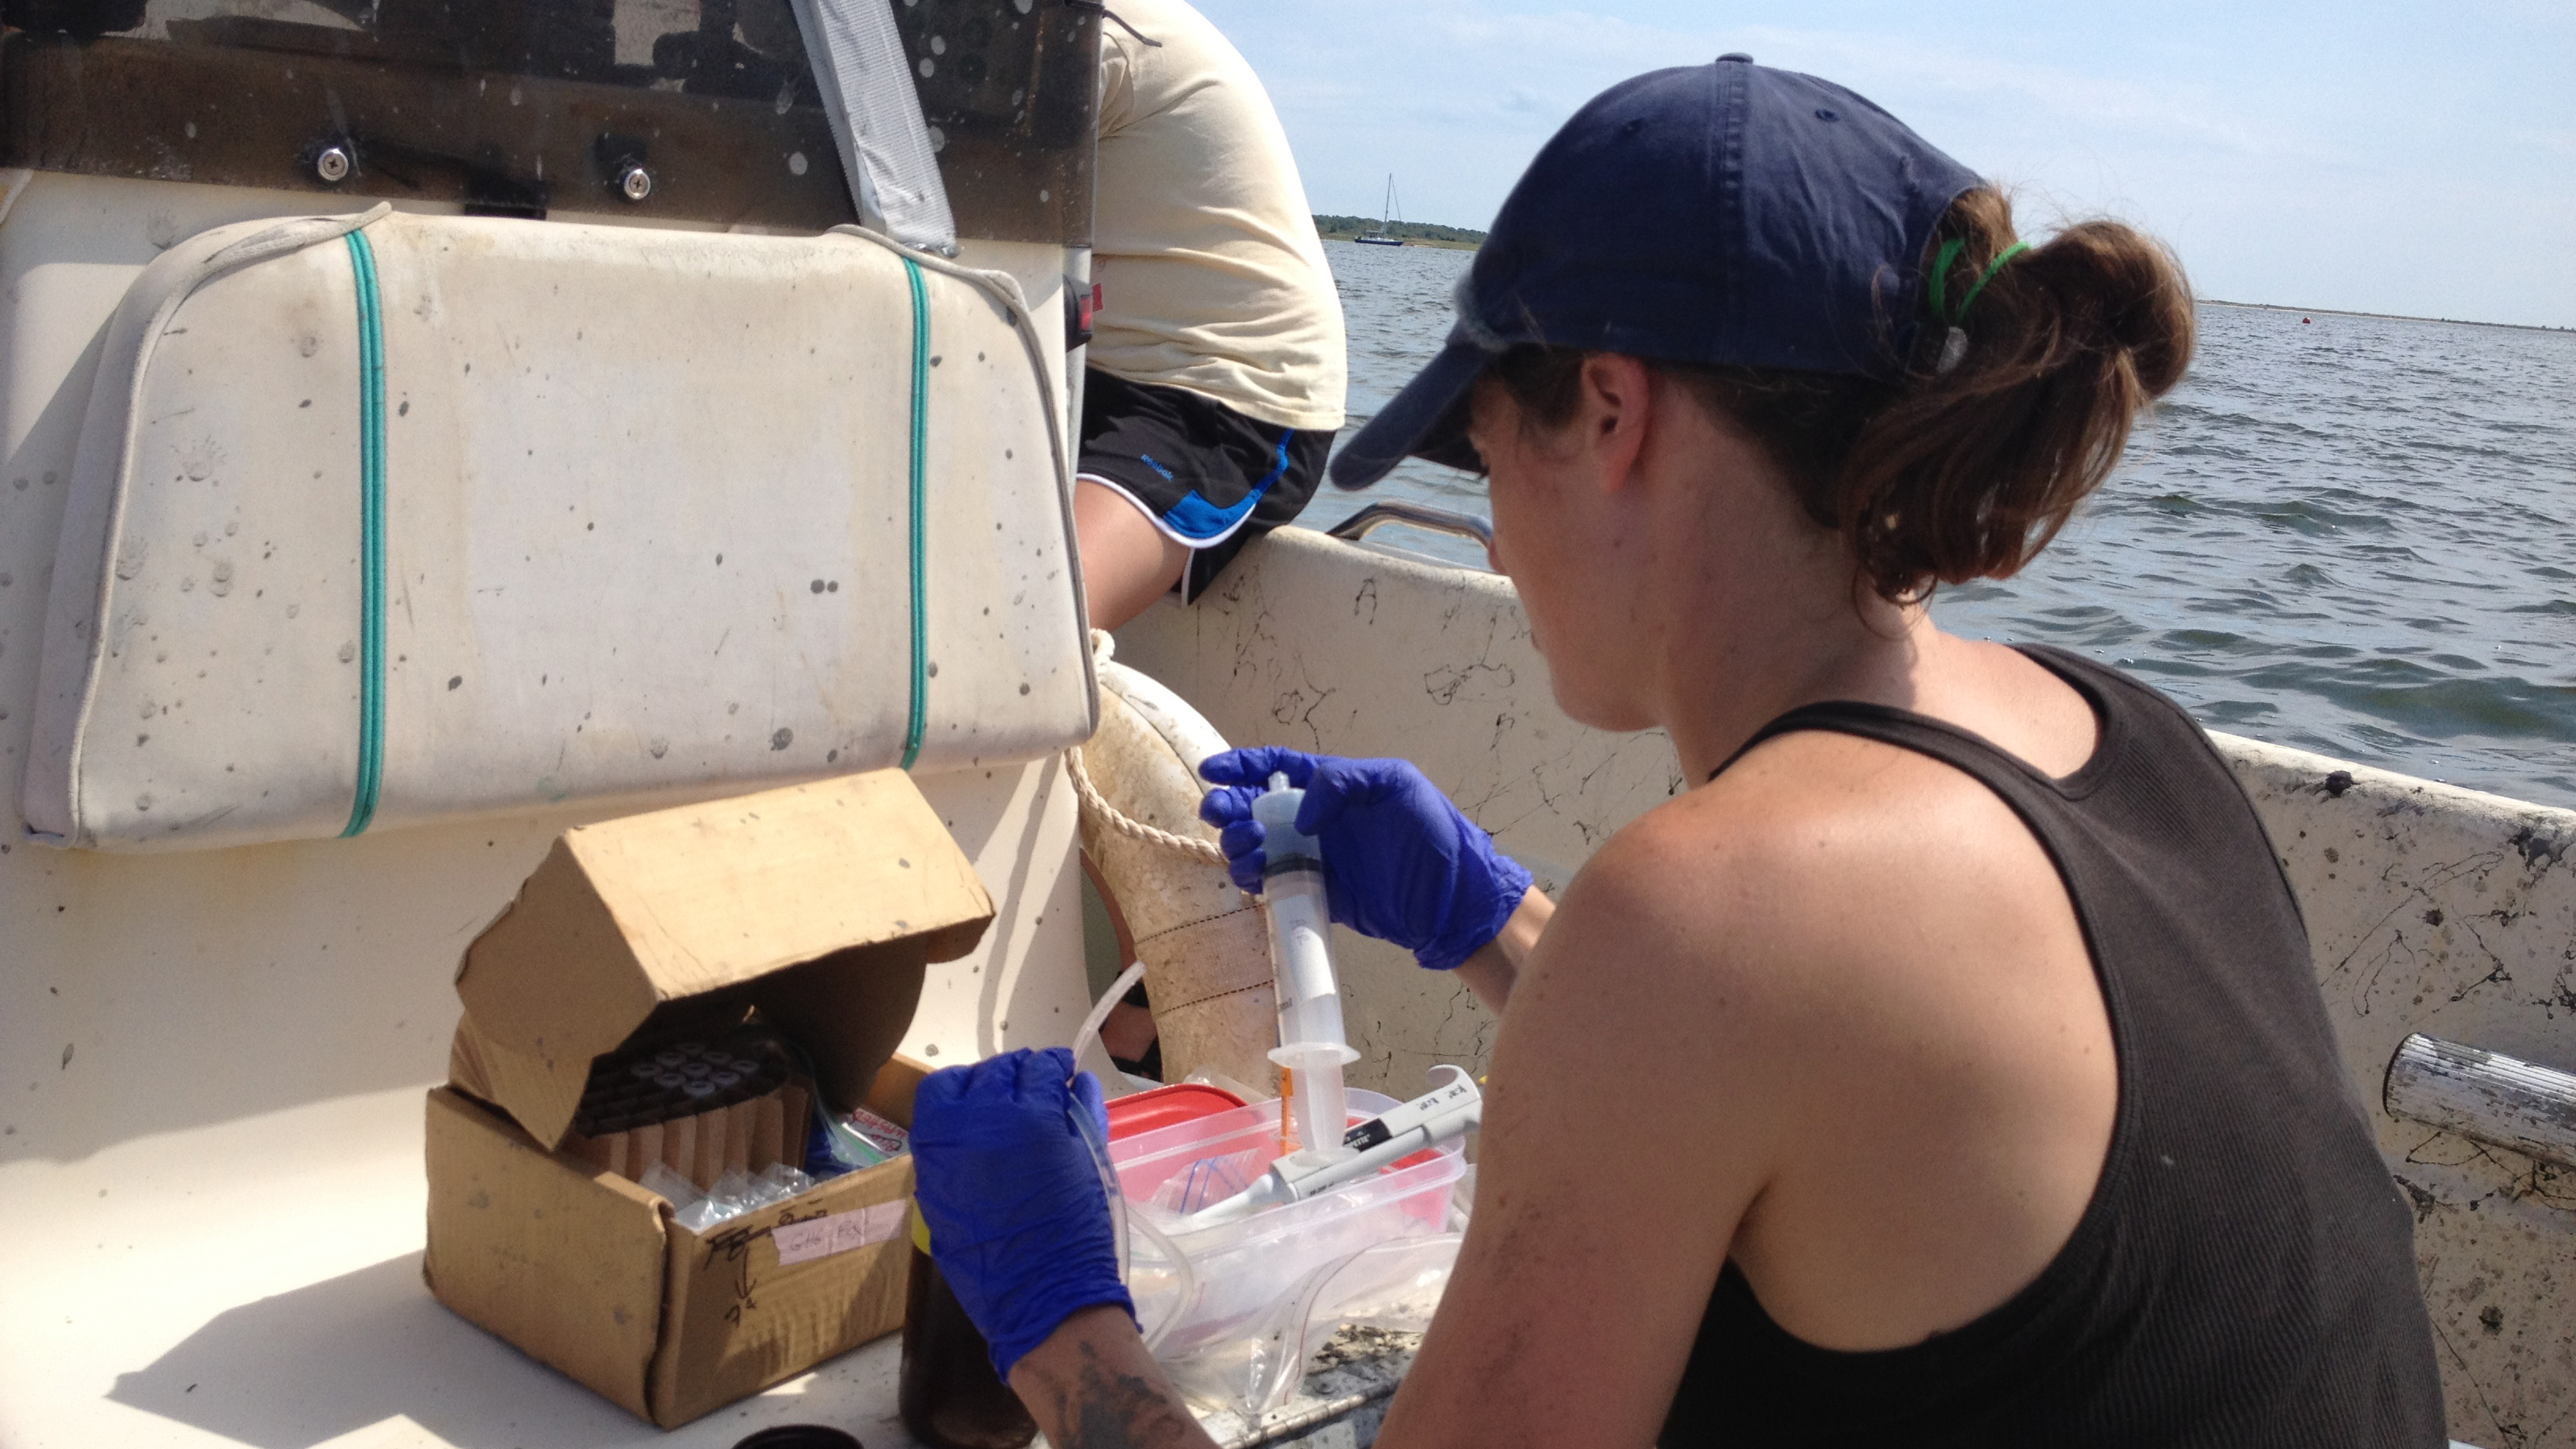 Sarah Foster preparing Waquoit Bay water samples to analyze for concentrations of methane and nitrous oxide. Photo credit: Silvia Newell